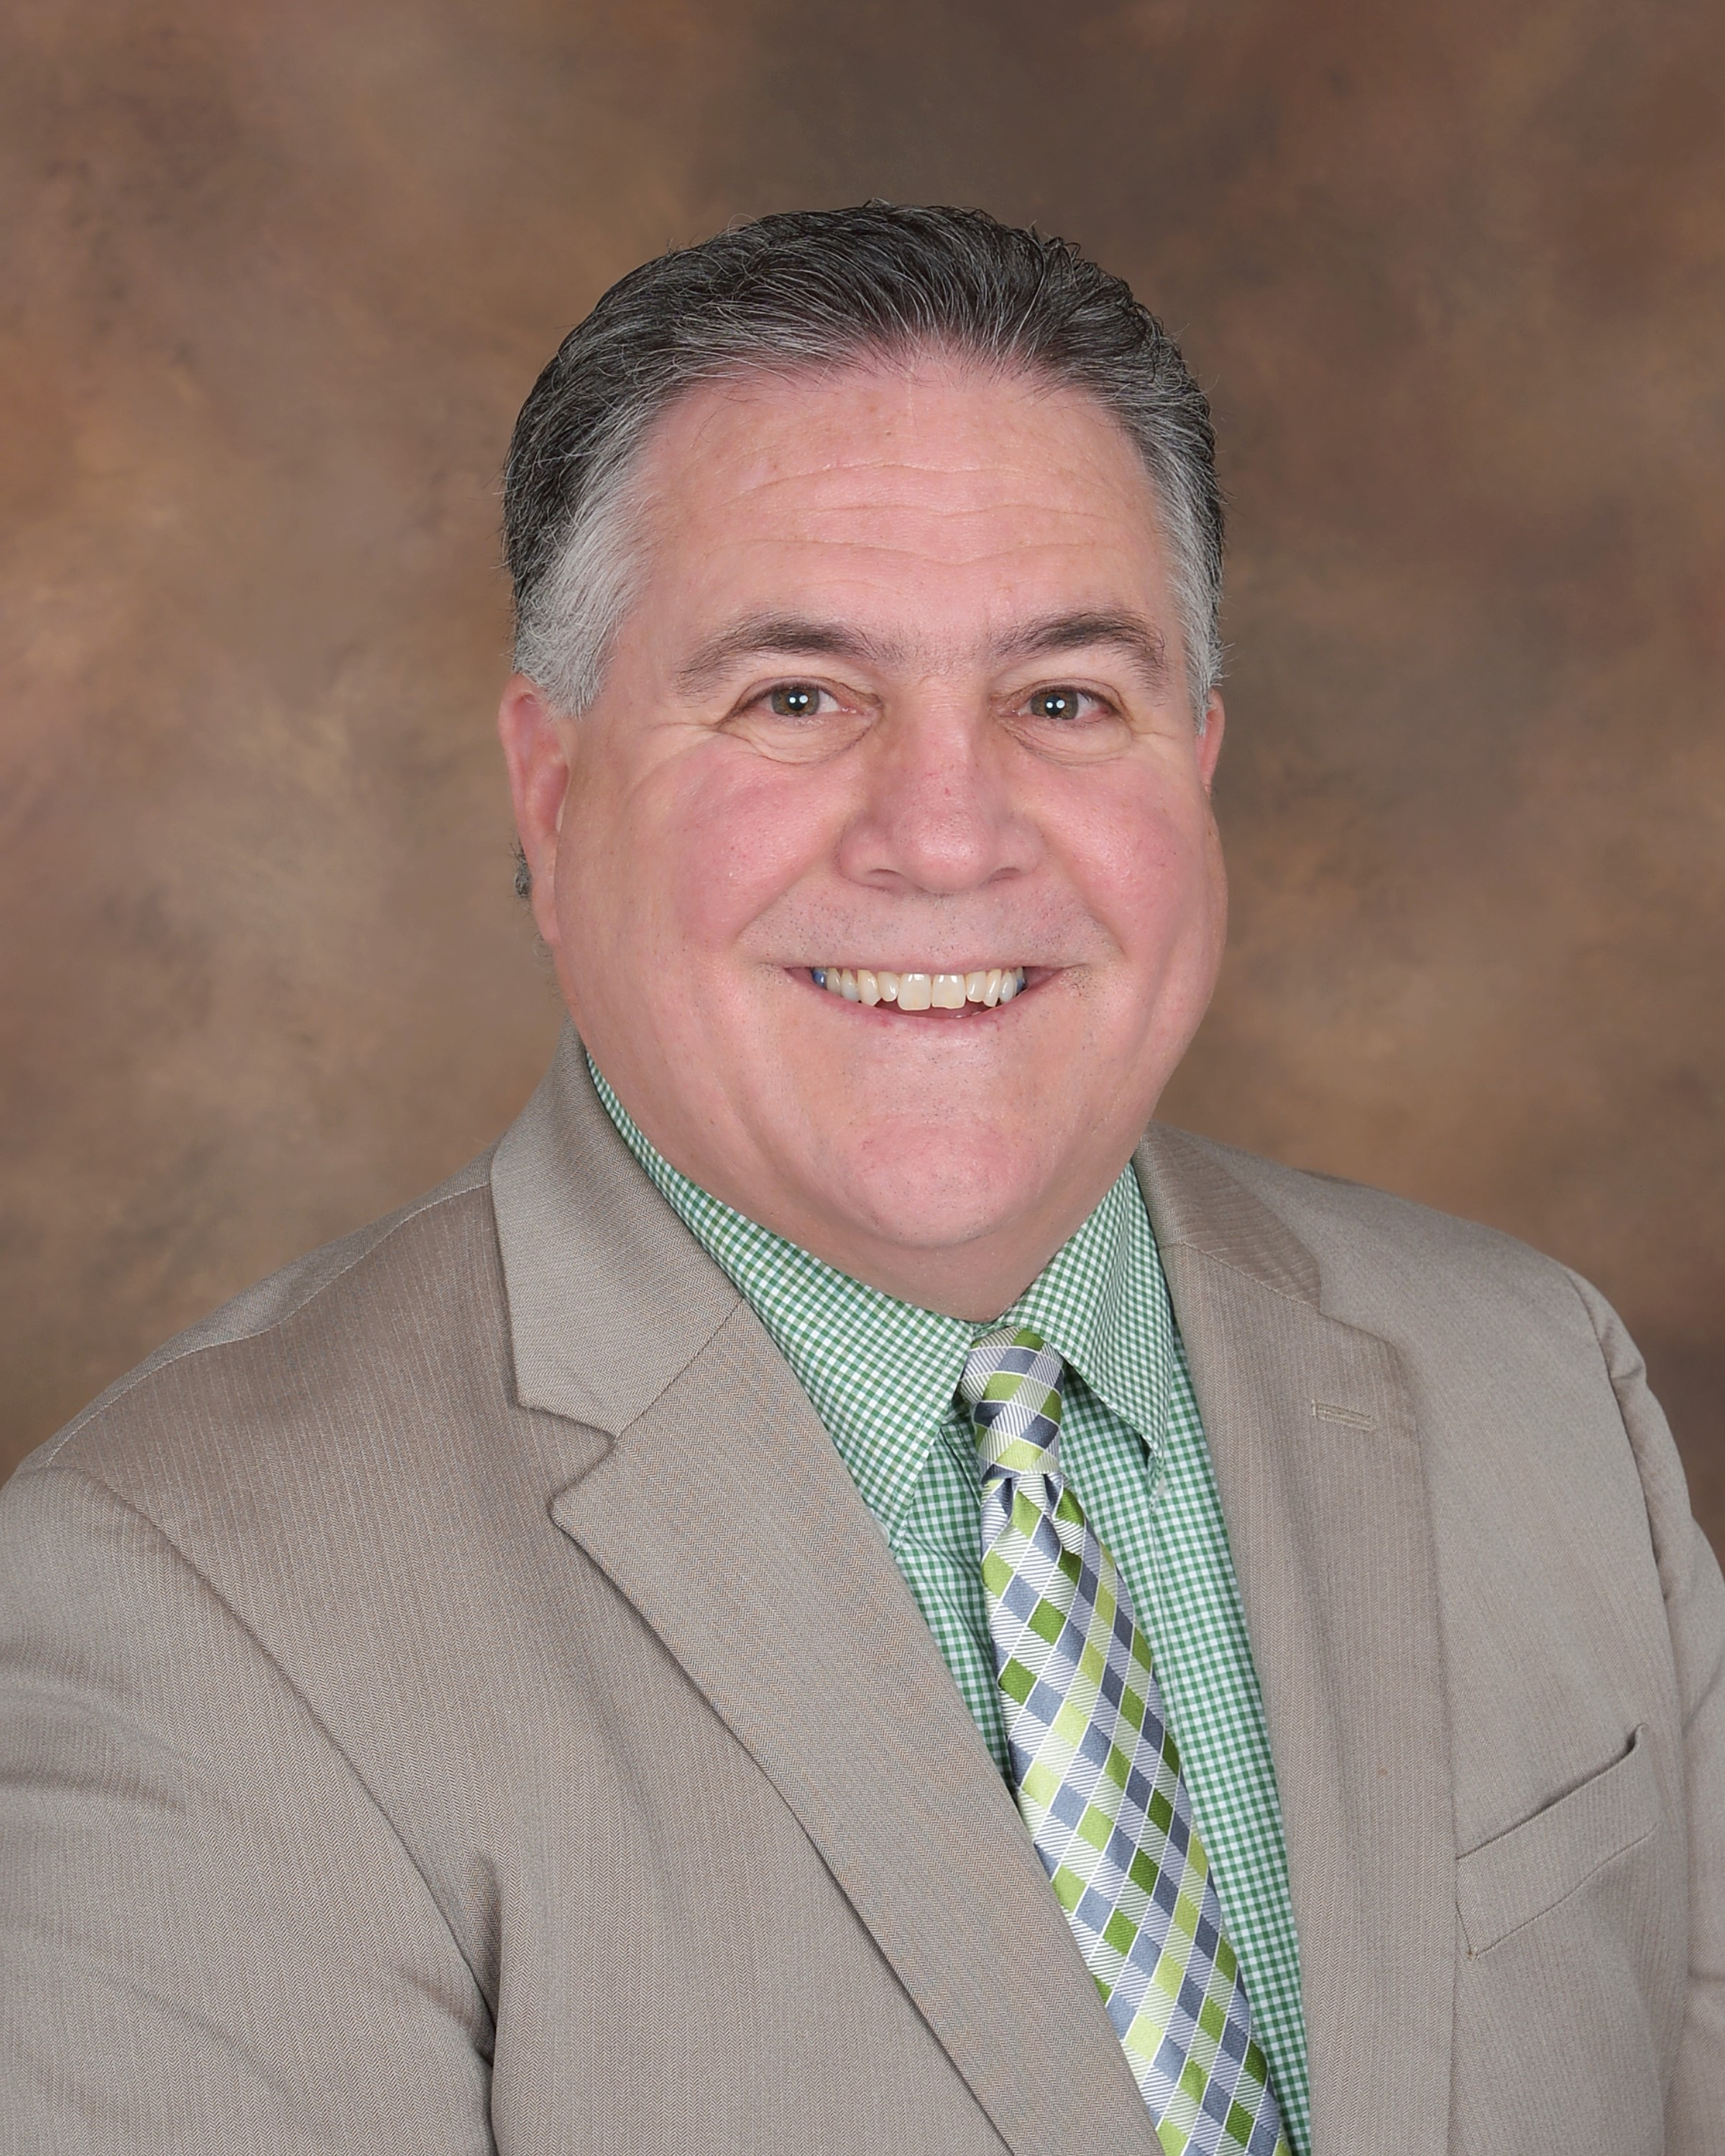 Don Maroney joins C&W Services, a facilities services company.